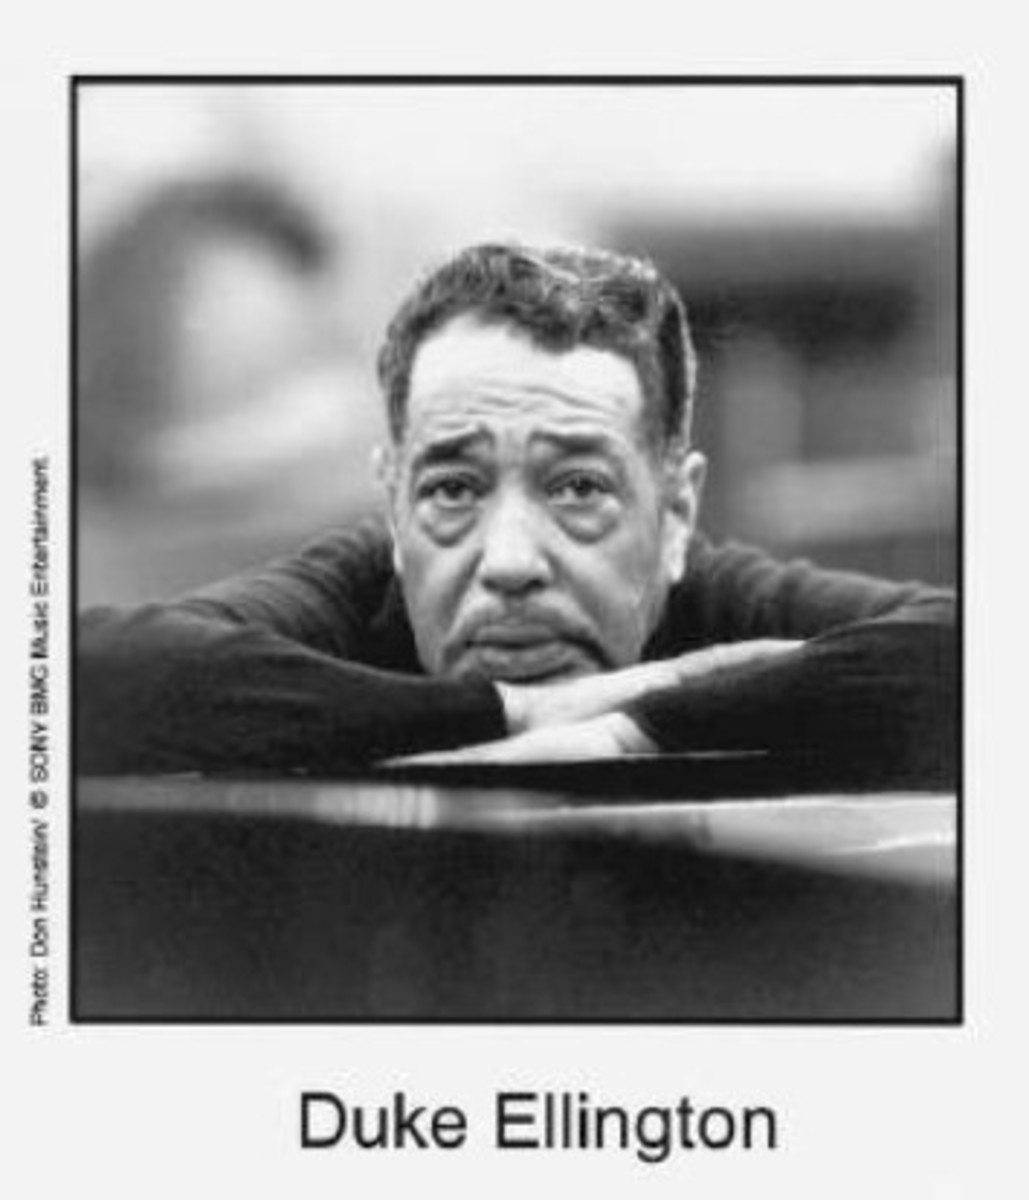 DUKE ELLINGTON'S key works can be researched via the Eda Kuhn Loeb Music Library, Harvard College Library, which is home to one of the most important Ellington collections in the world. Don Hunstein/Copyright Sony BMG Music Entertainment